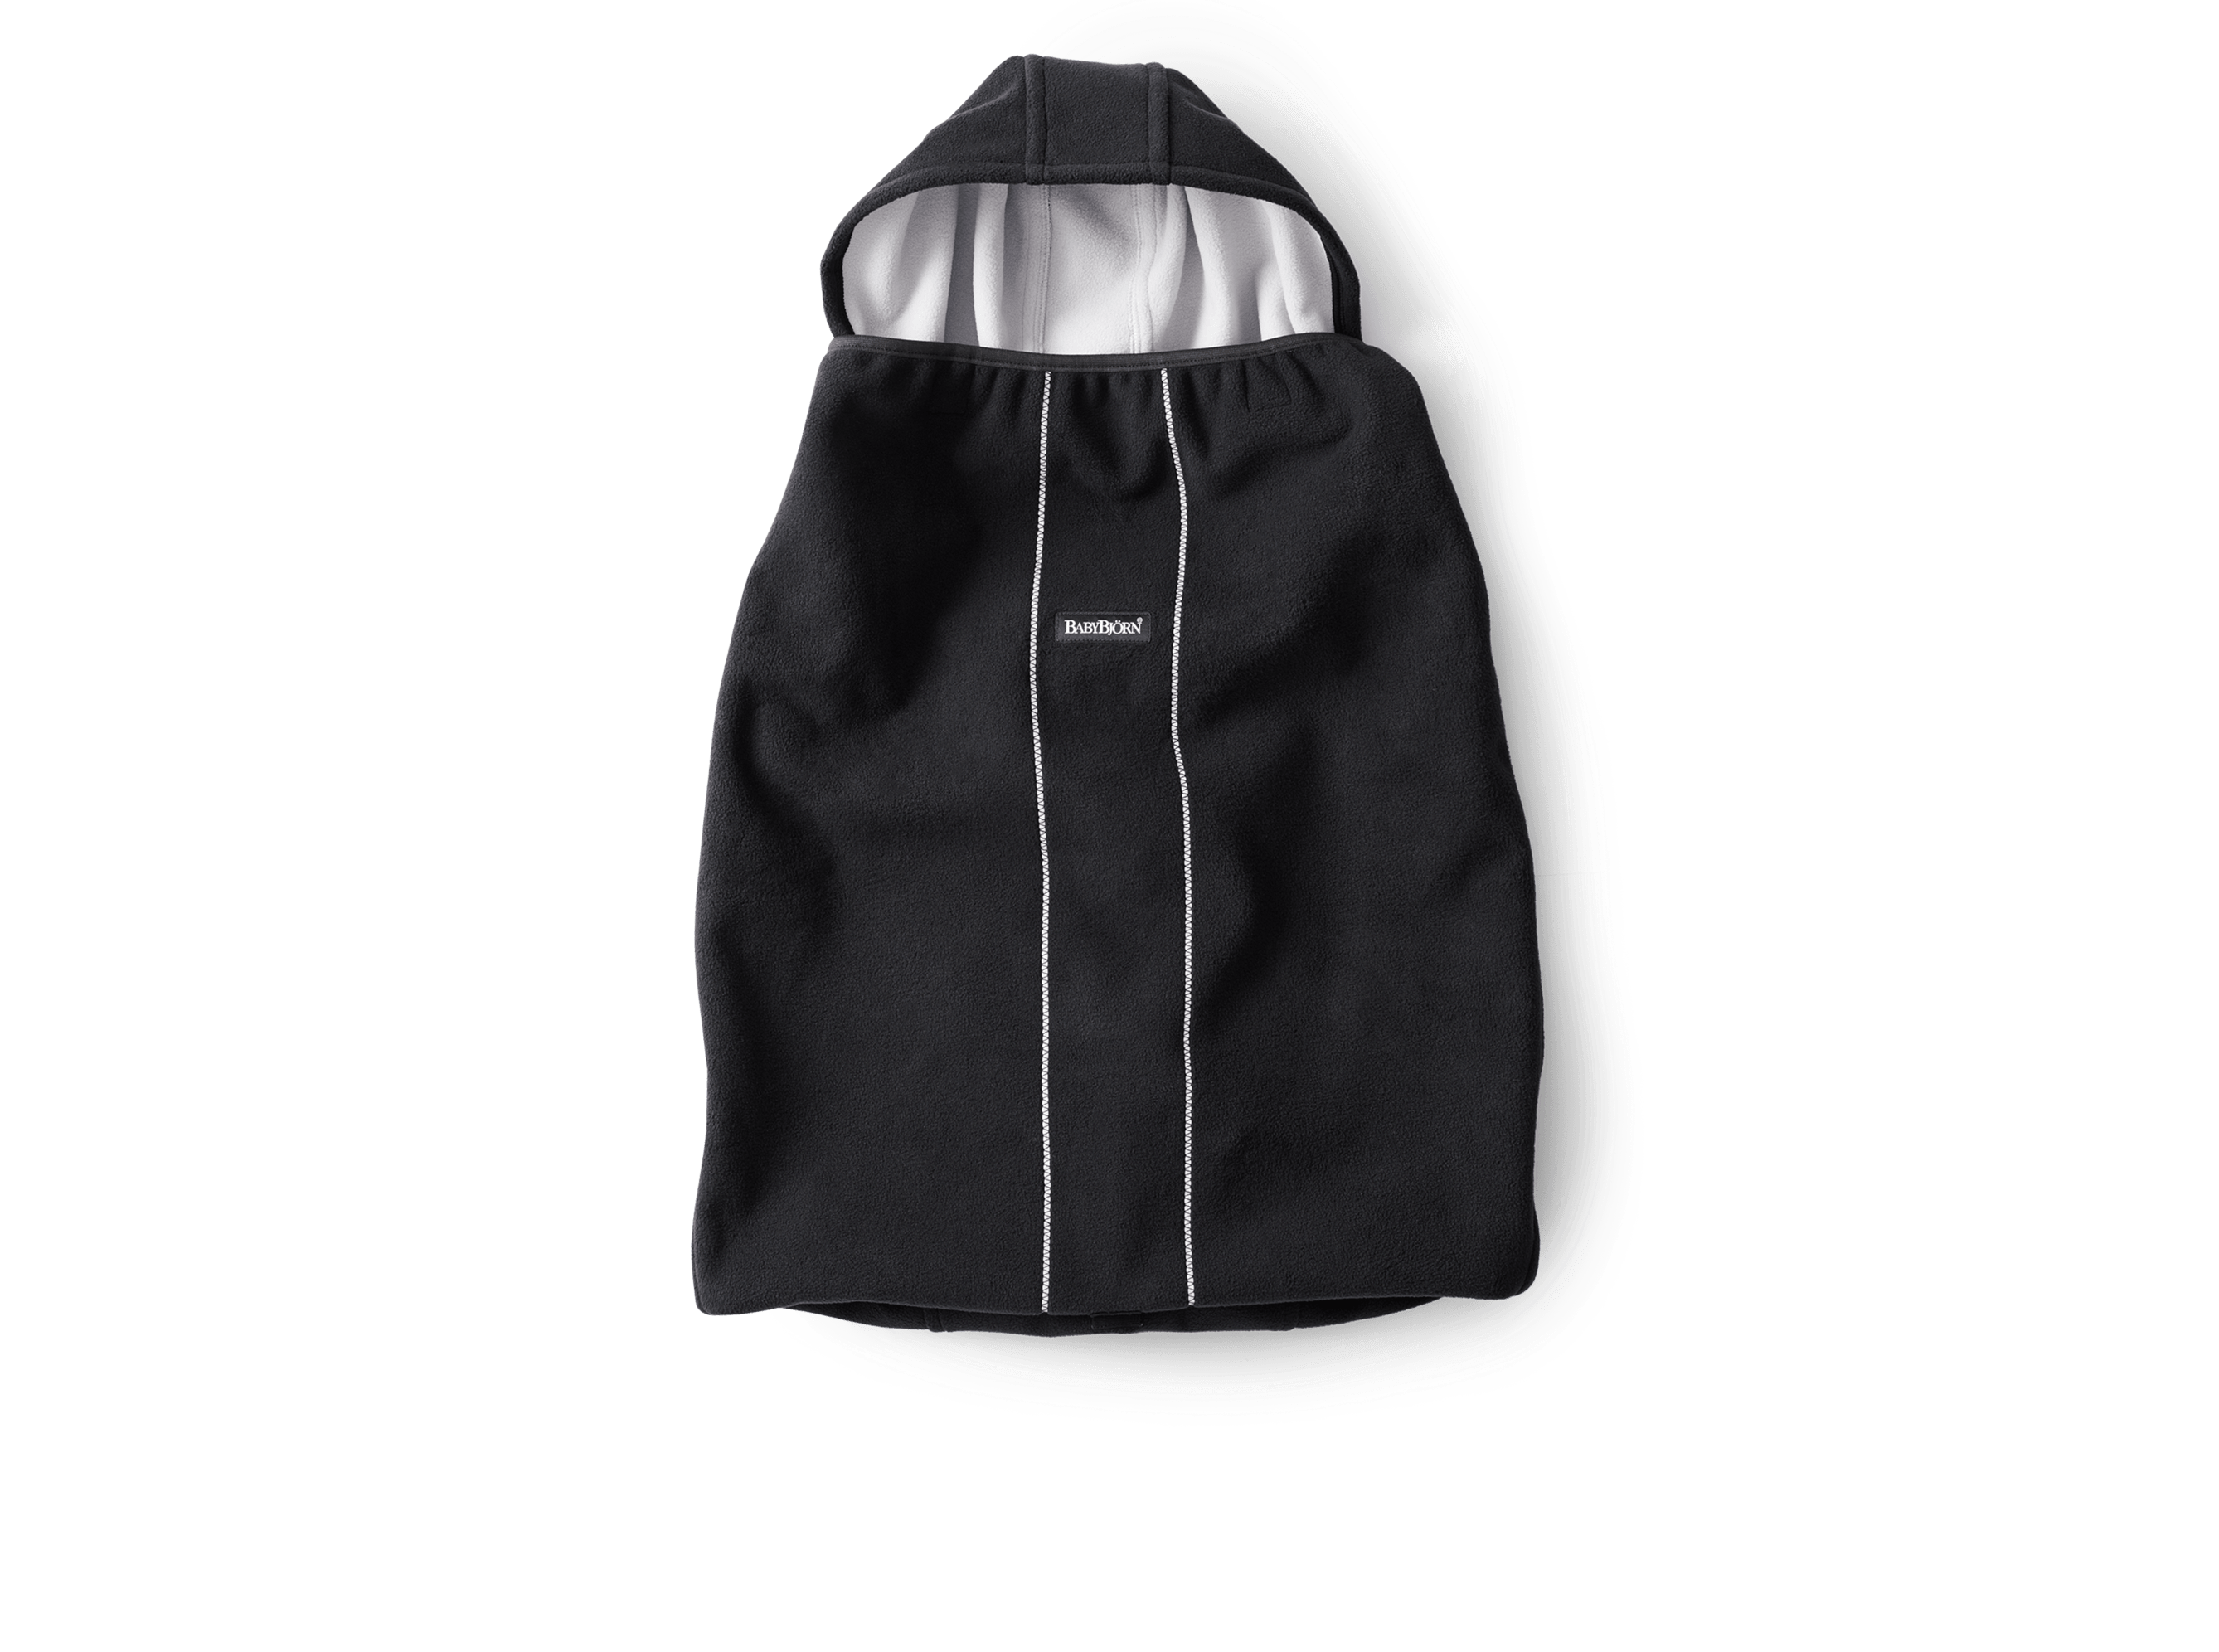 af6f4aed204 Windproof cover for baby carrier new babybjÖrn png 2676x1992 Baby bjorn  miracle carrier